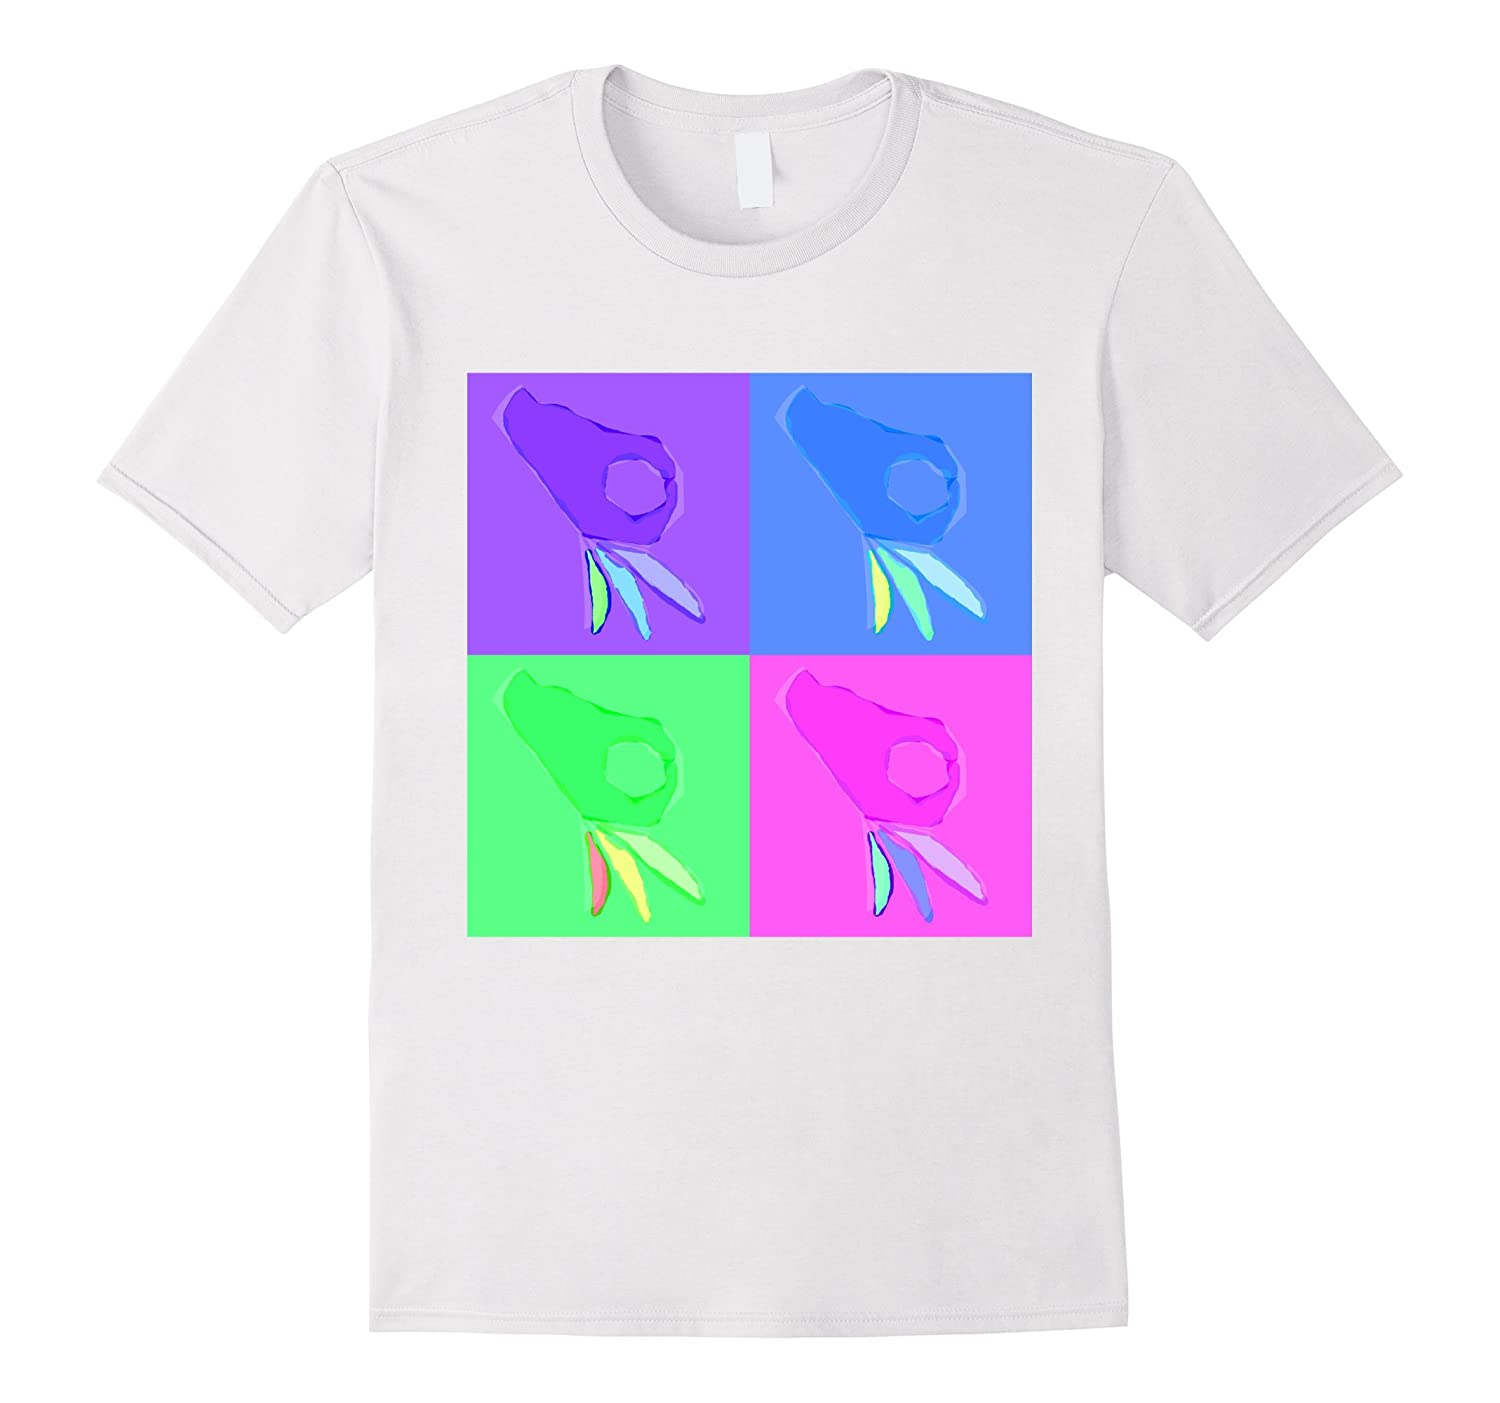 Finger Circle Game Shirt Tempting-Awarplus